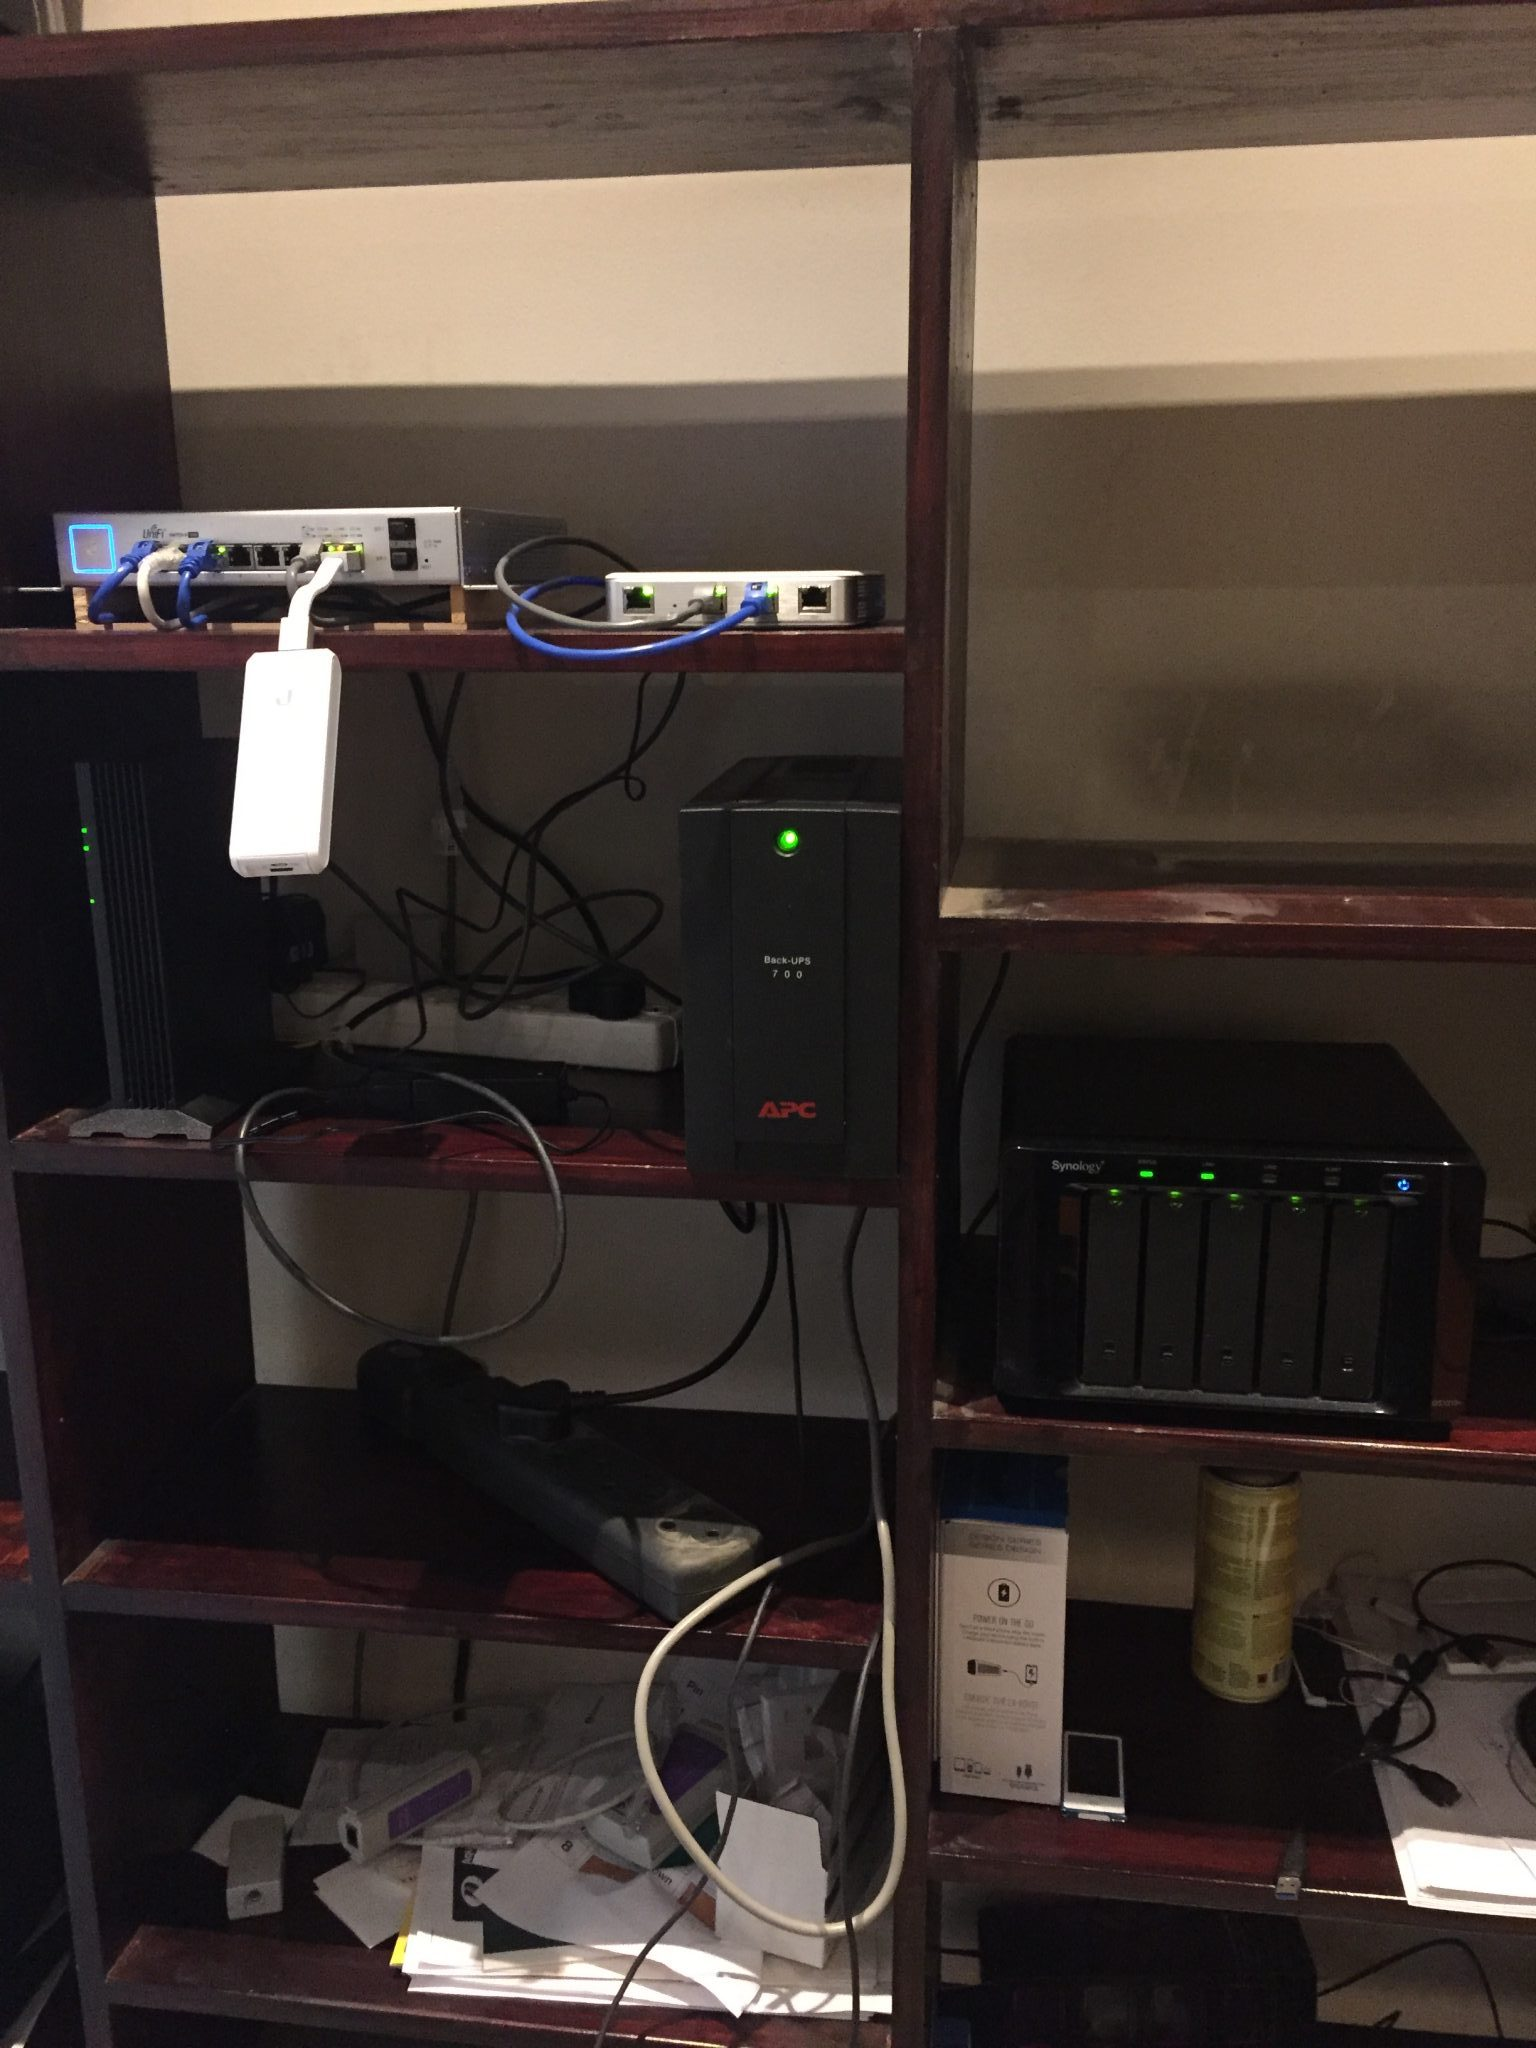 Recabling my home network with Ubiquiti and Cat6 - lessons learned